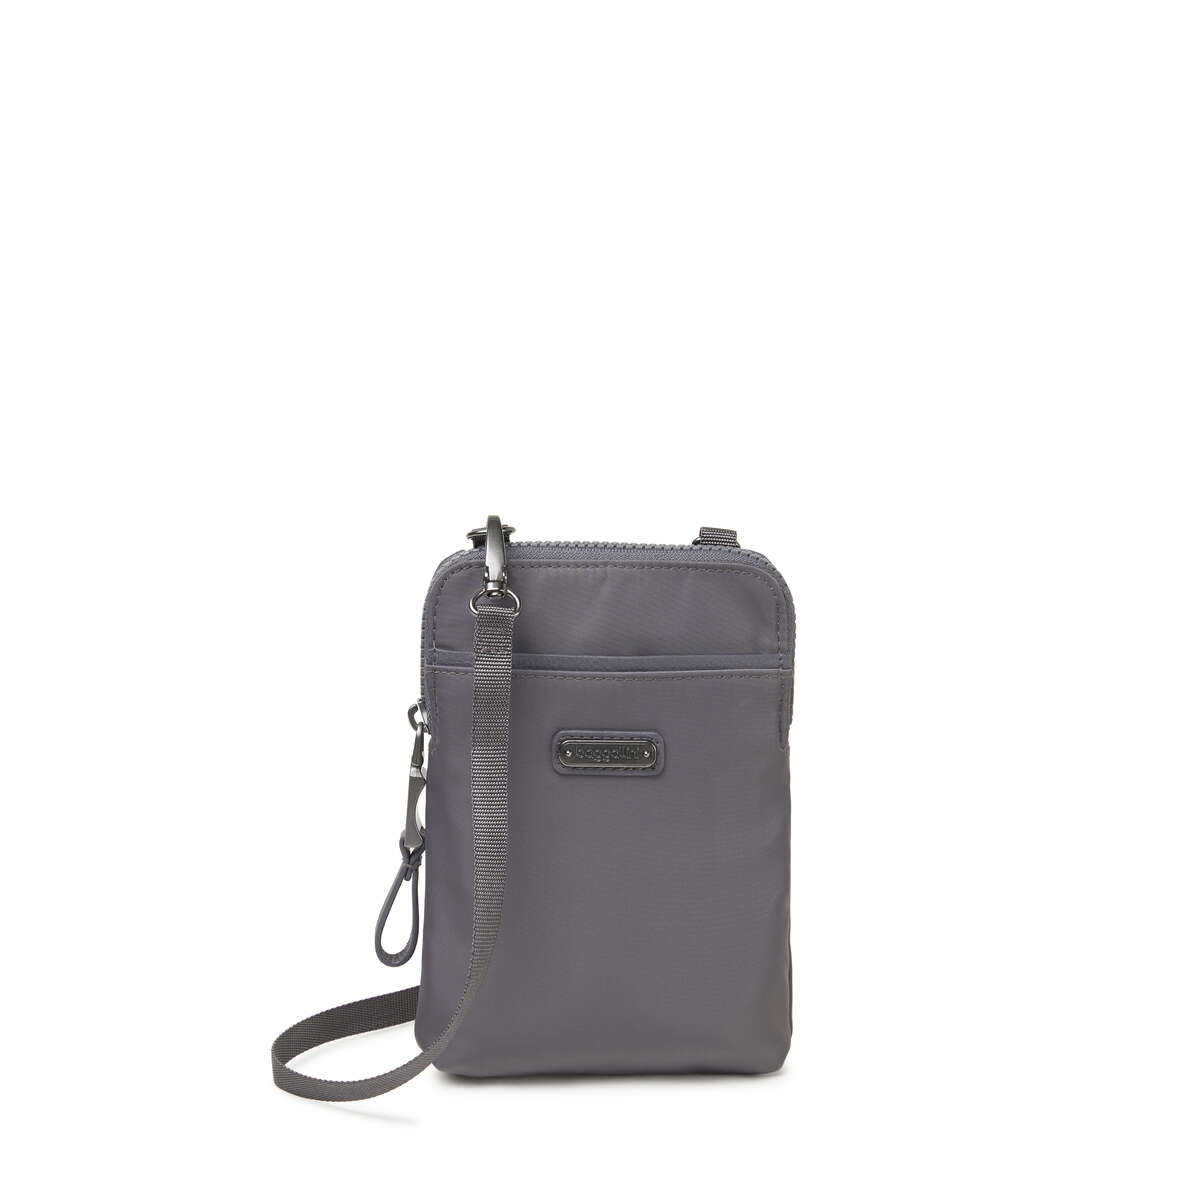 Baggallini Broadway Crossbody Bag